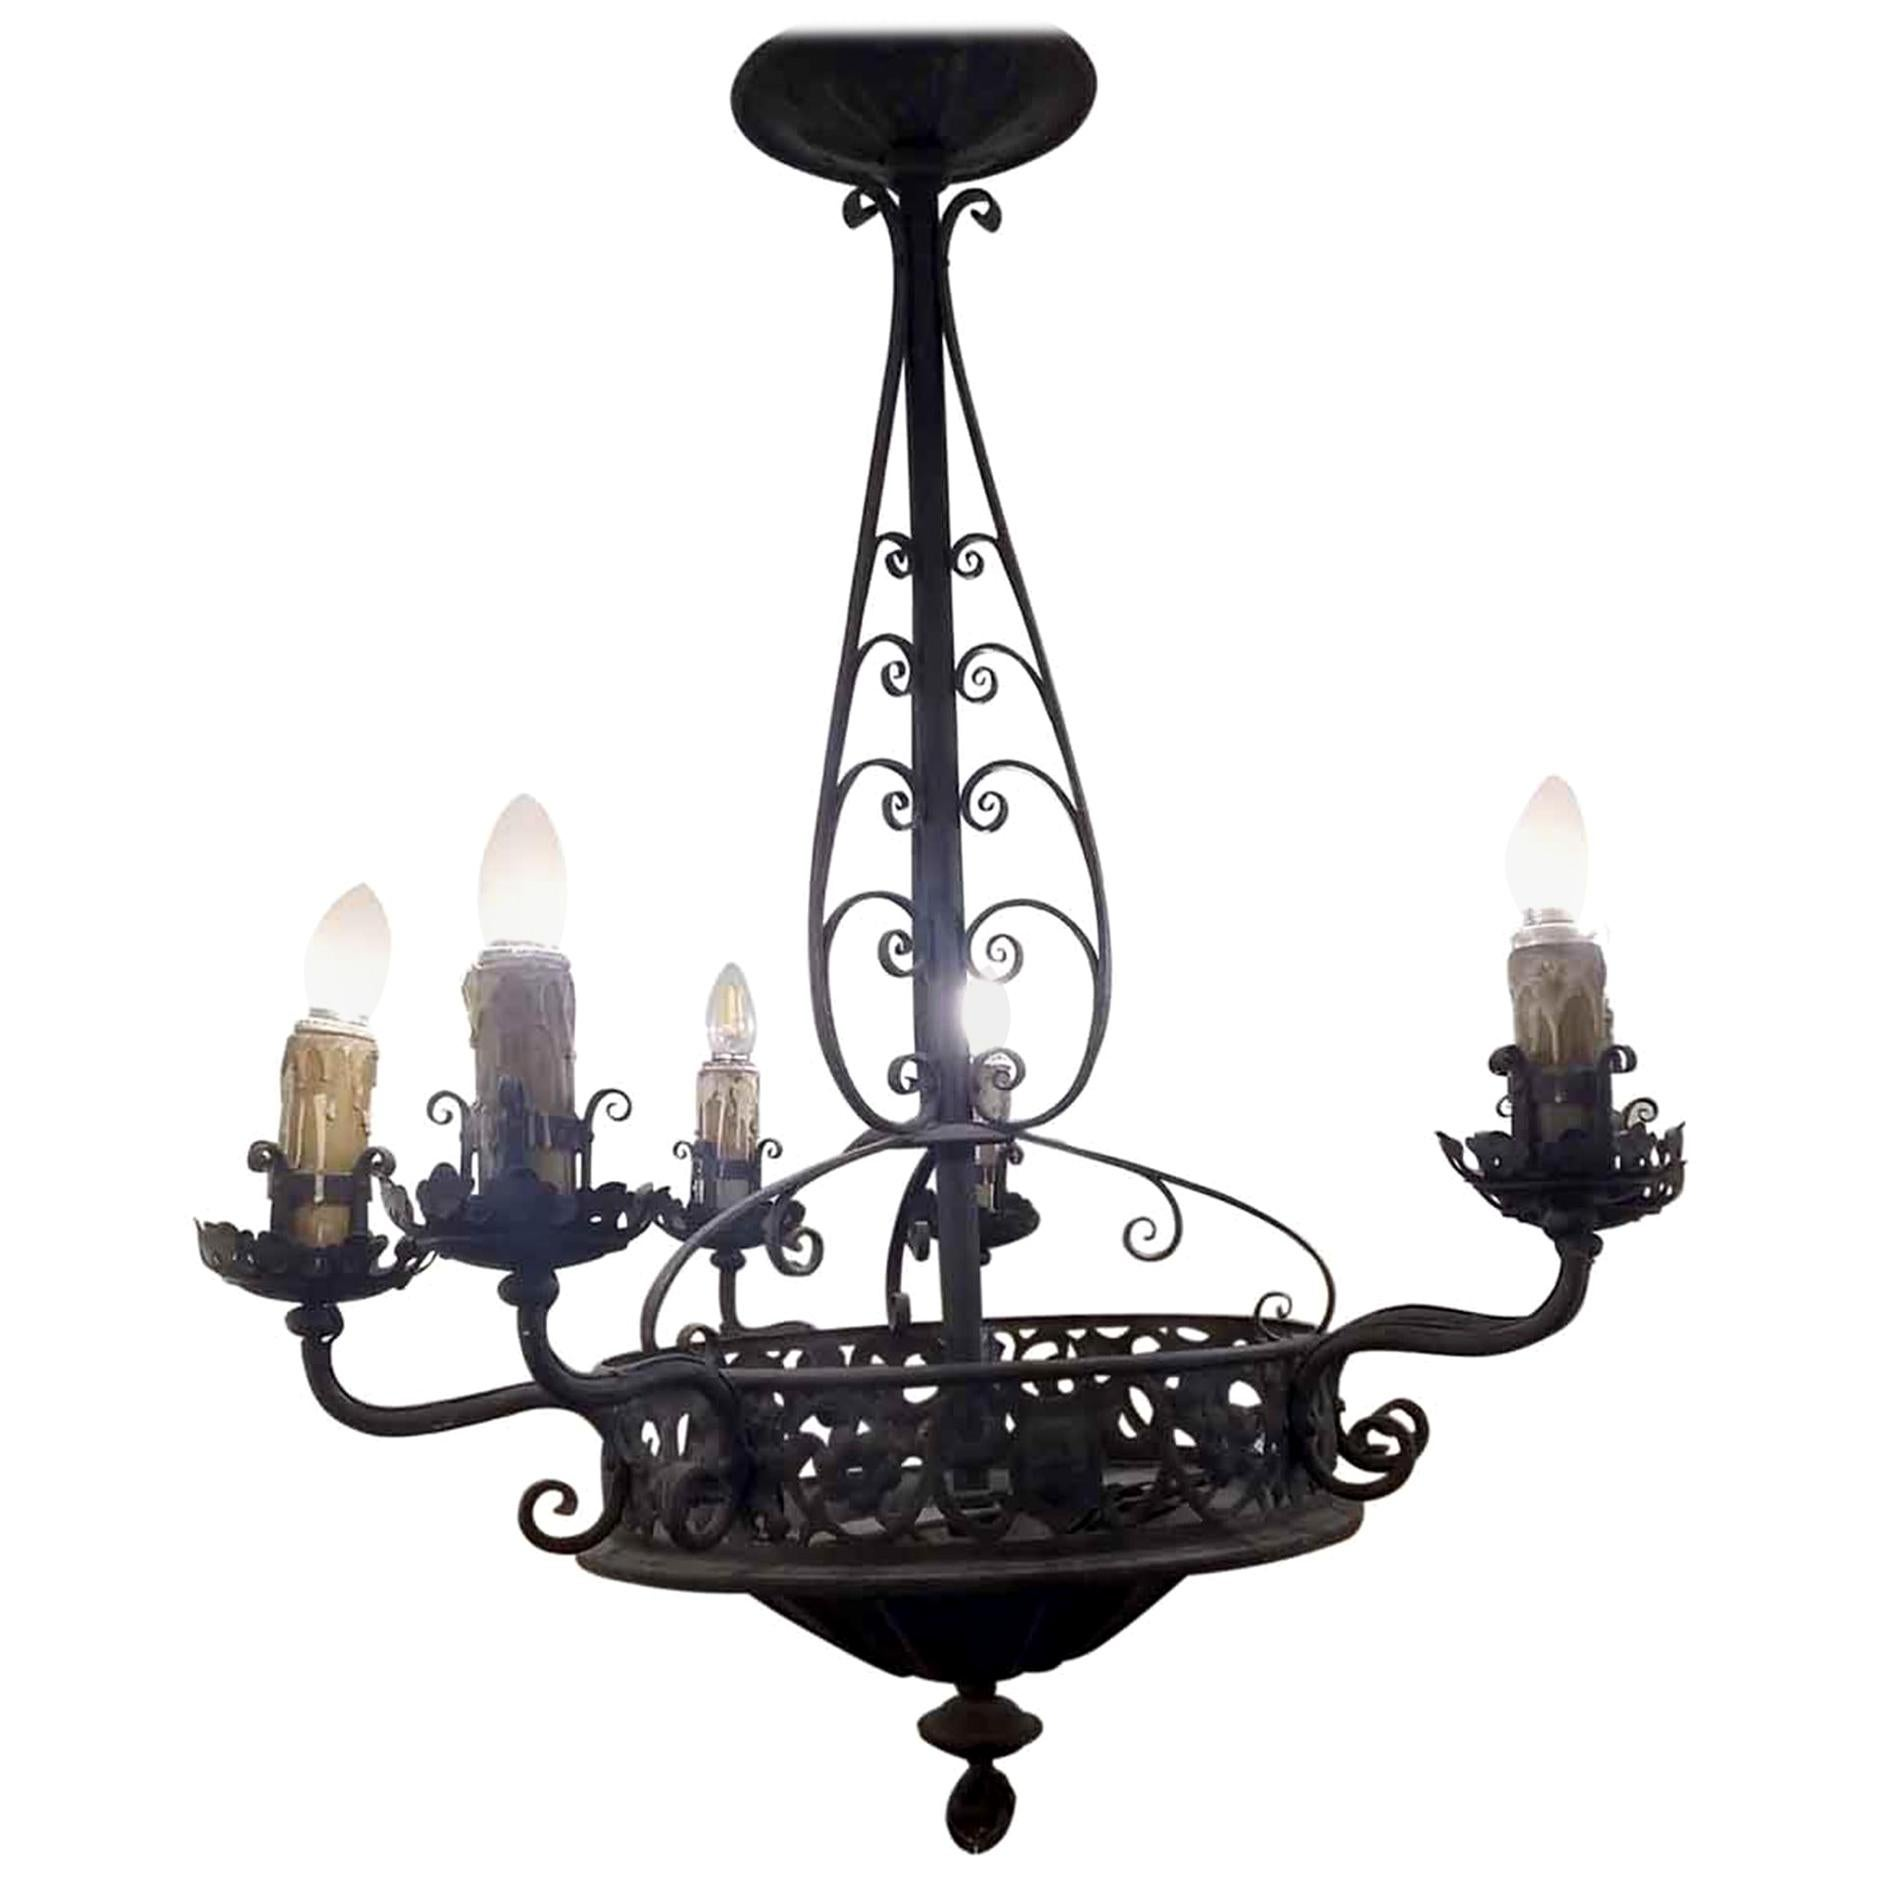 1940s French 6-Arm Wrought Iron Chandelier